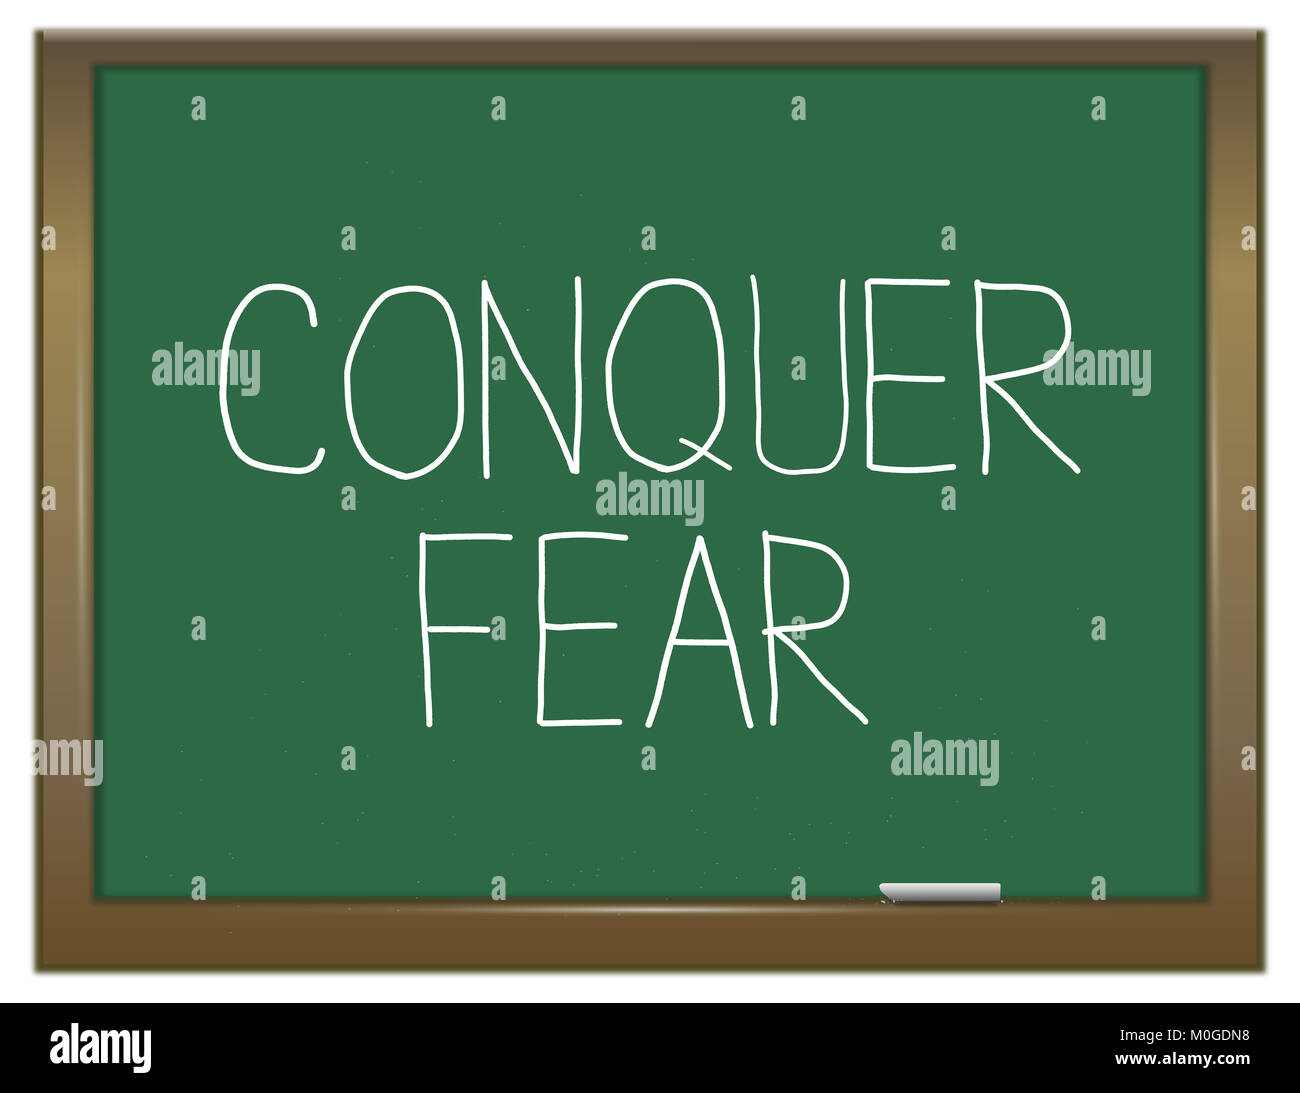 3d Illustration depicting a green chalkboard with a conquer fear concept. - Stock Image